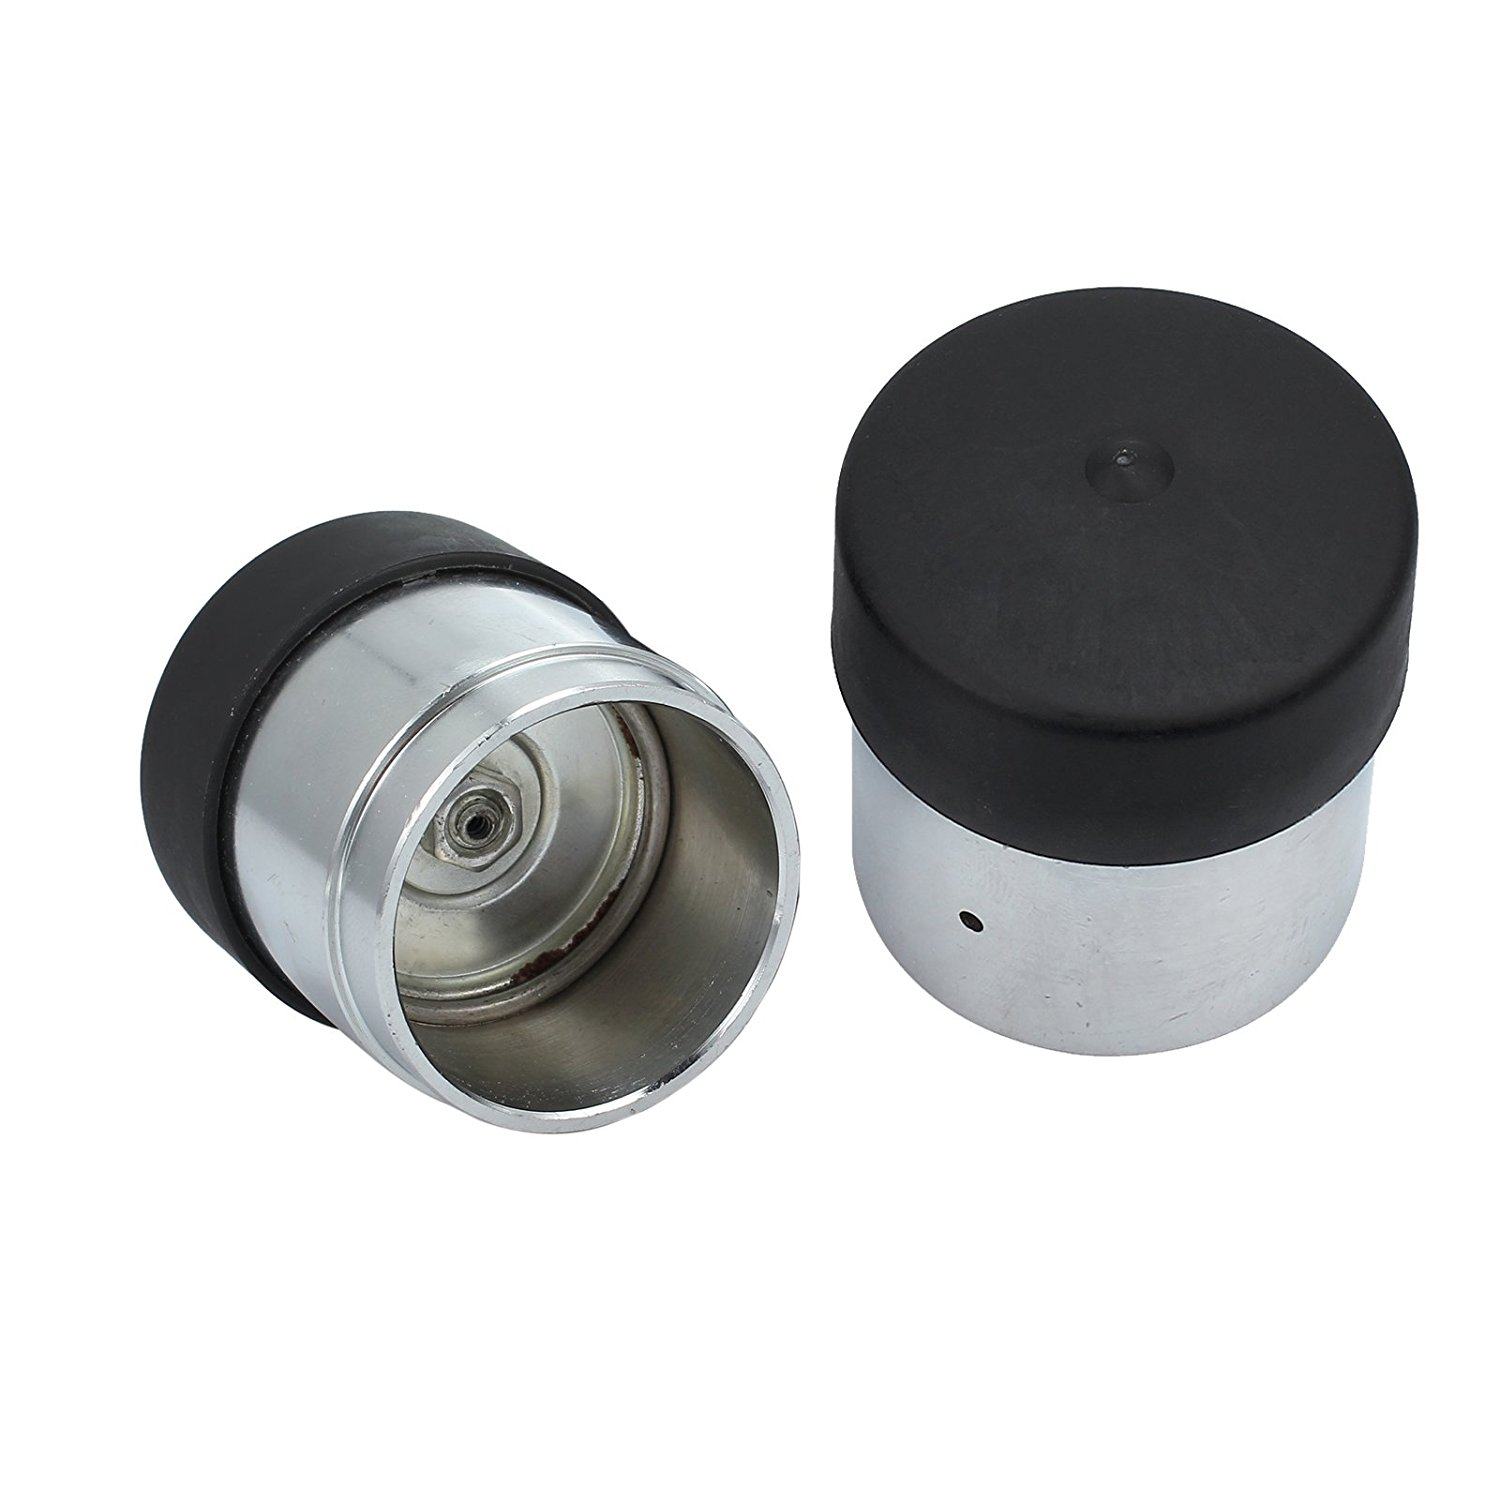 Proster 2PCS Trailer Hub Bearing Protectors with Dust Cover Caps 45mm Pair Bearing Buddies